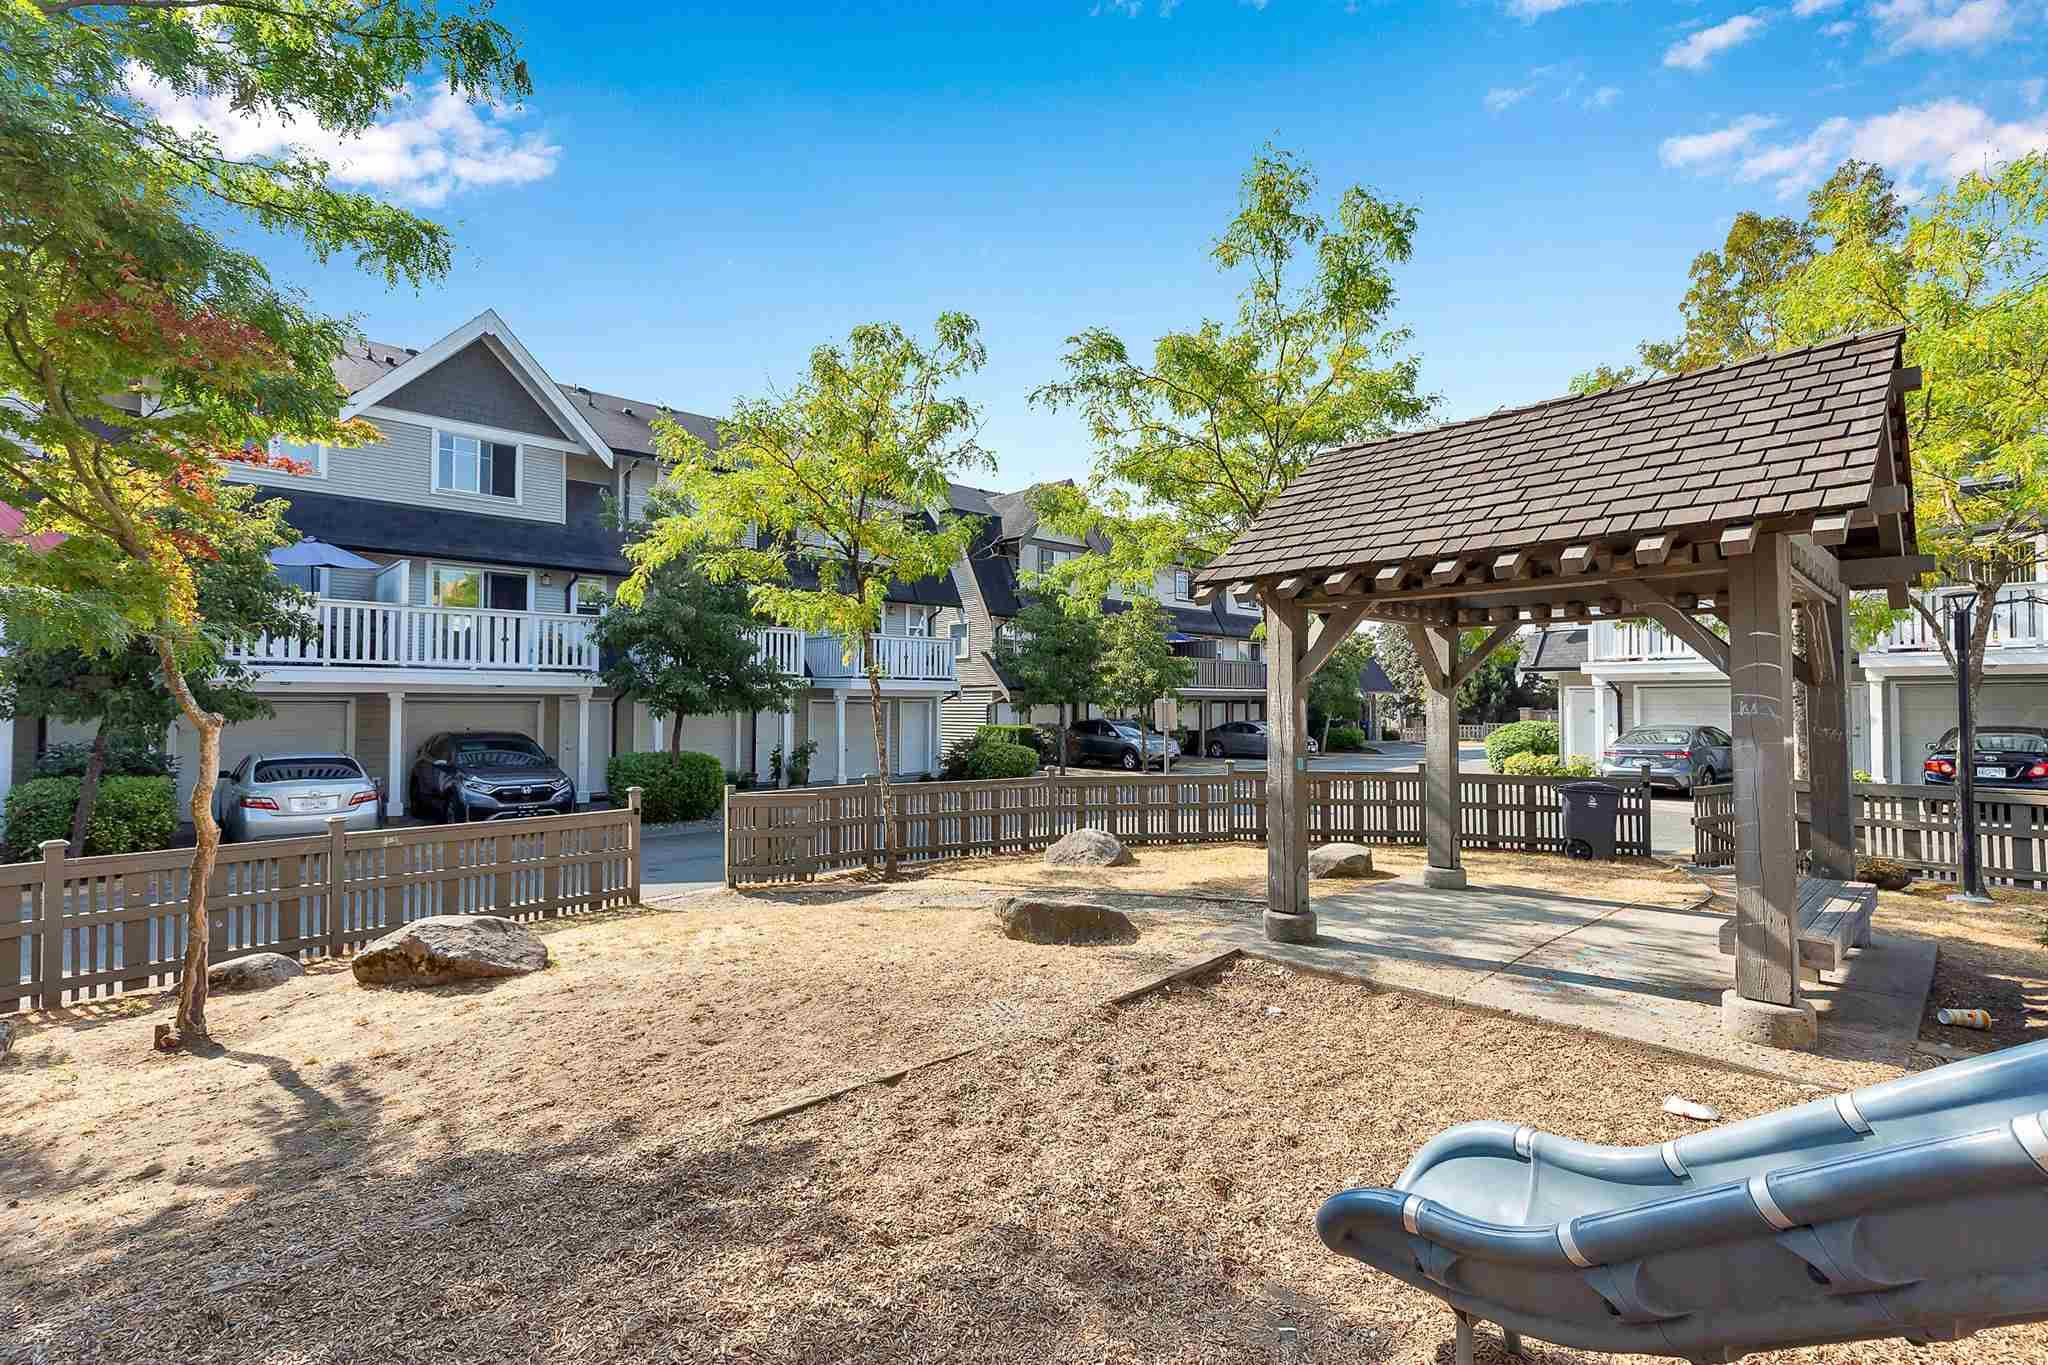 """Photo 32: Photos: 9 15871 85 Avenue in Surrey: Fleetwood Tynehead Townhouse for sale in """"Huckleberry"""" : MLS®# R2606668"""